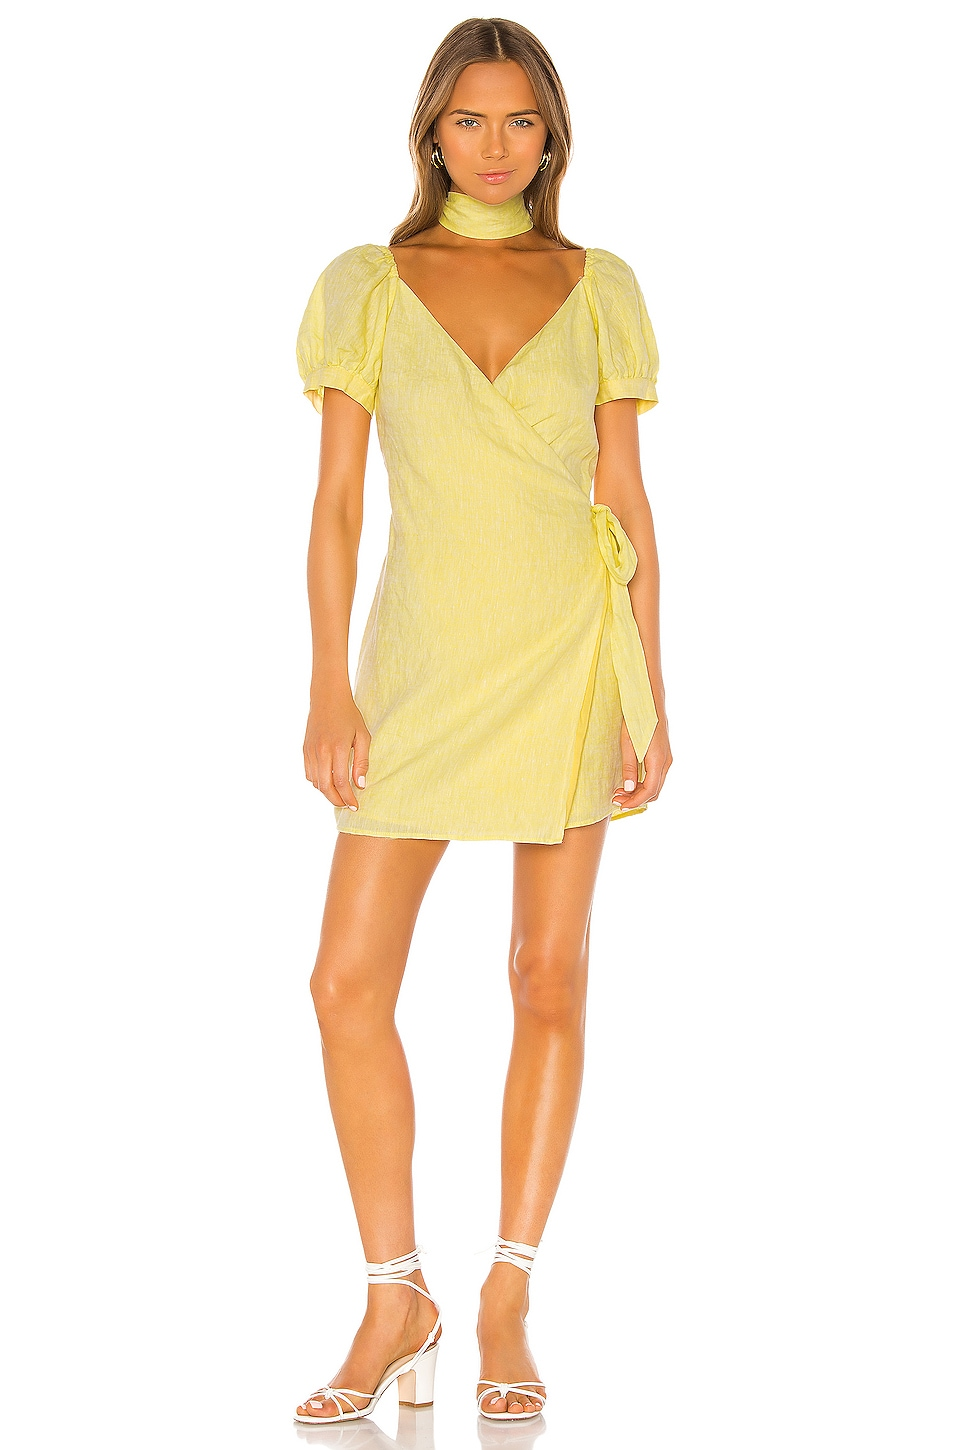 LPA Gionna Dress in Butter Yellow